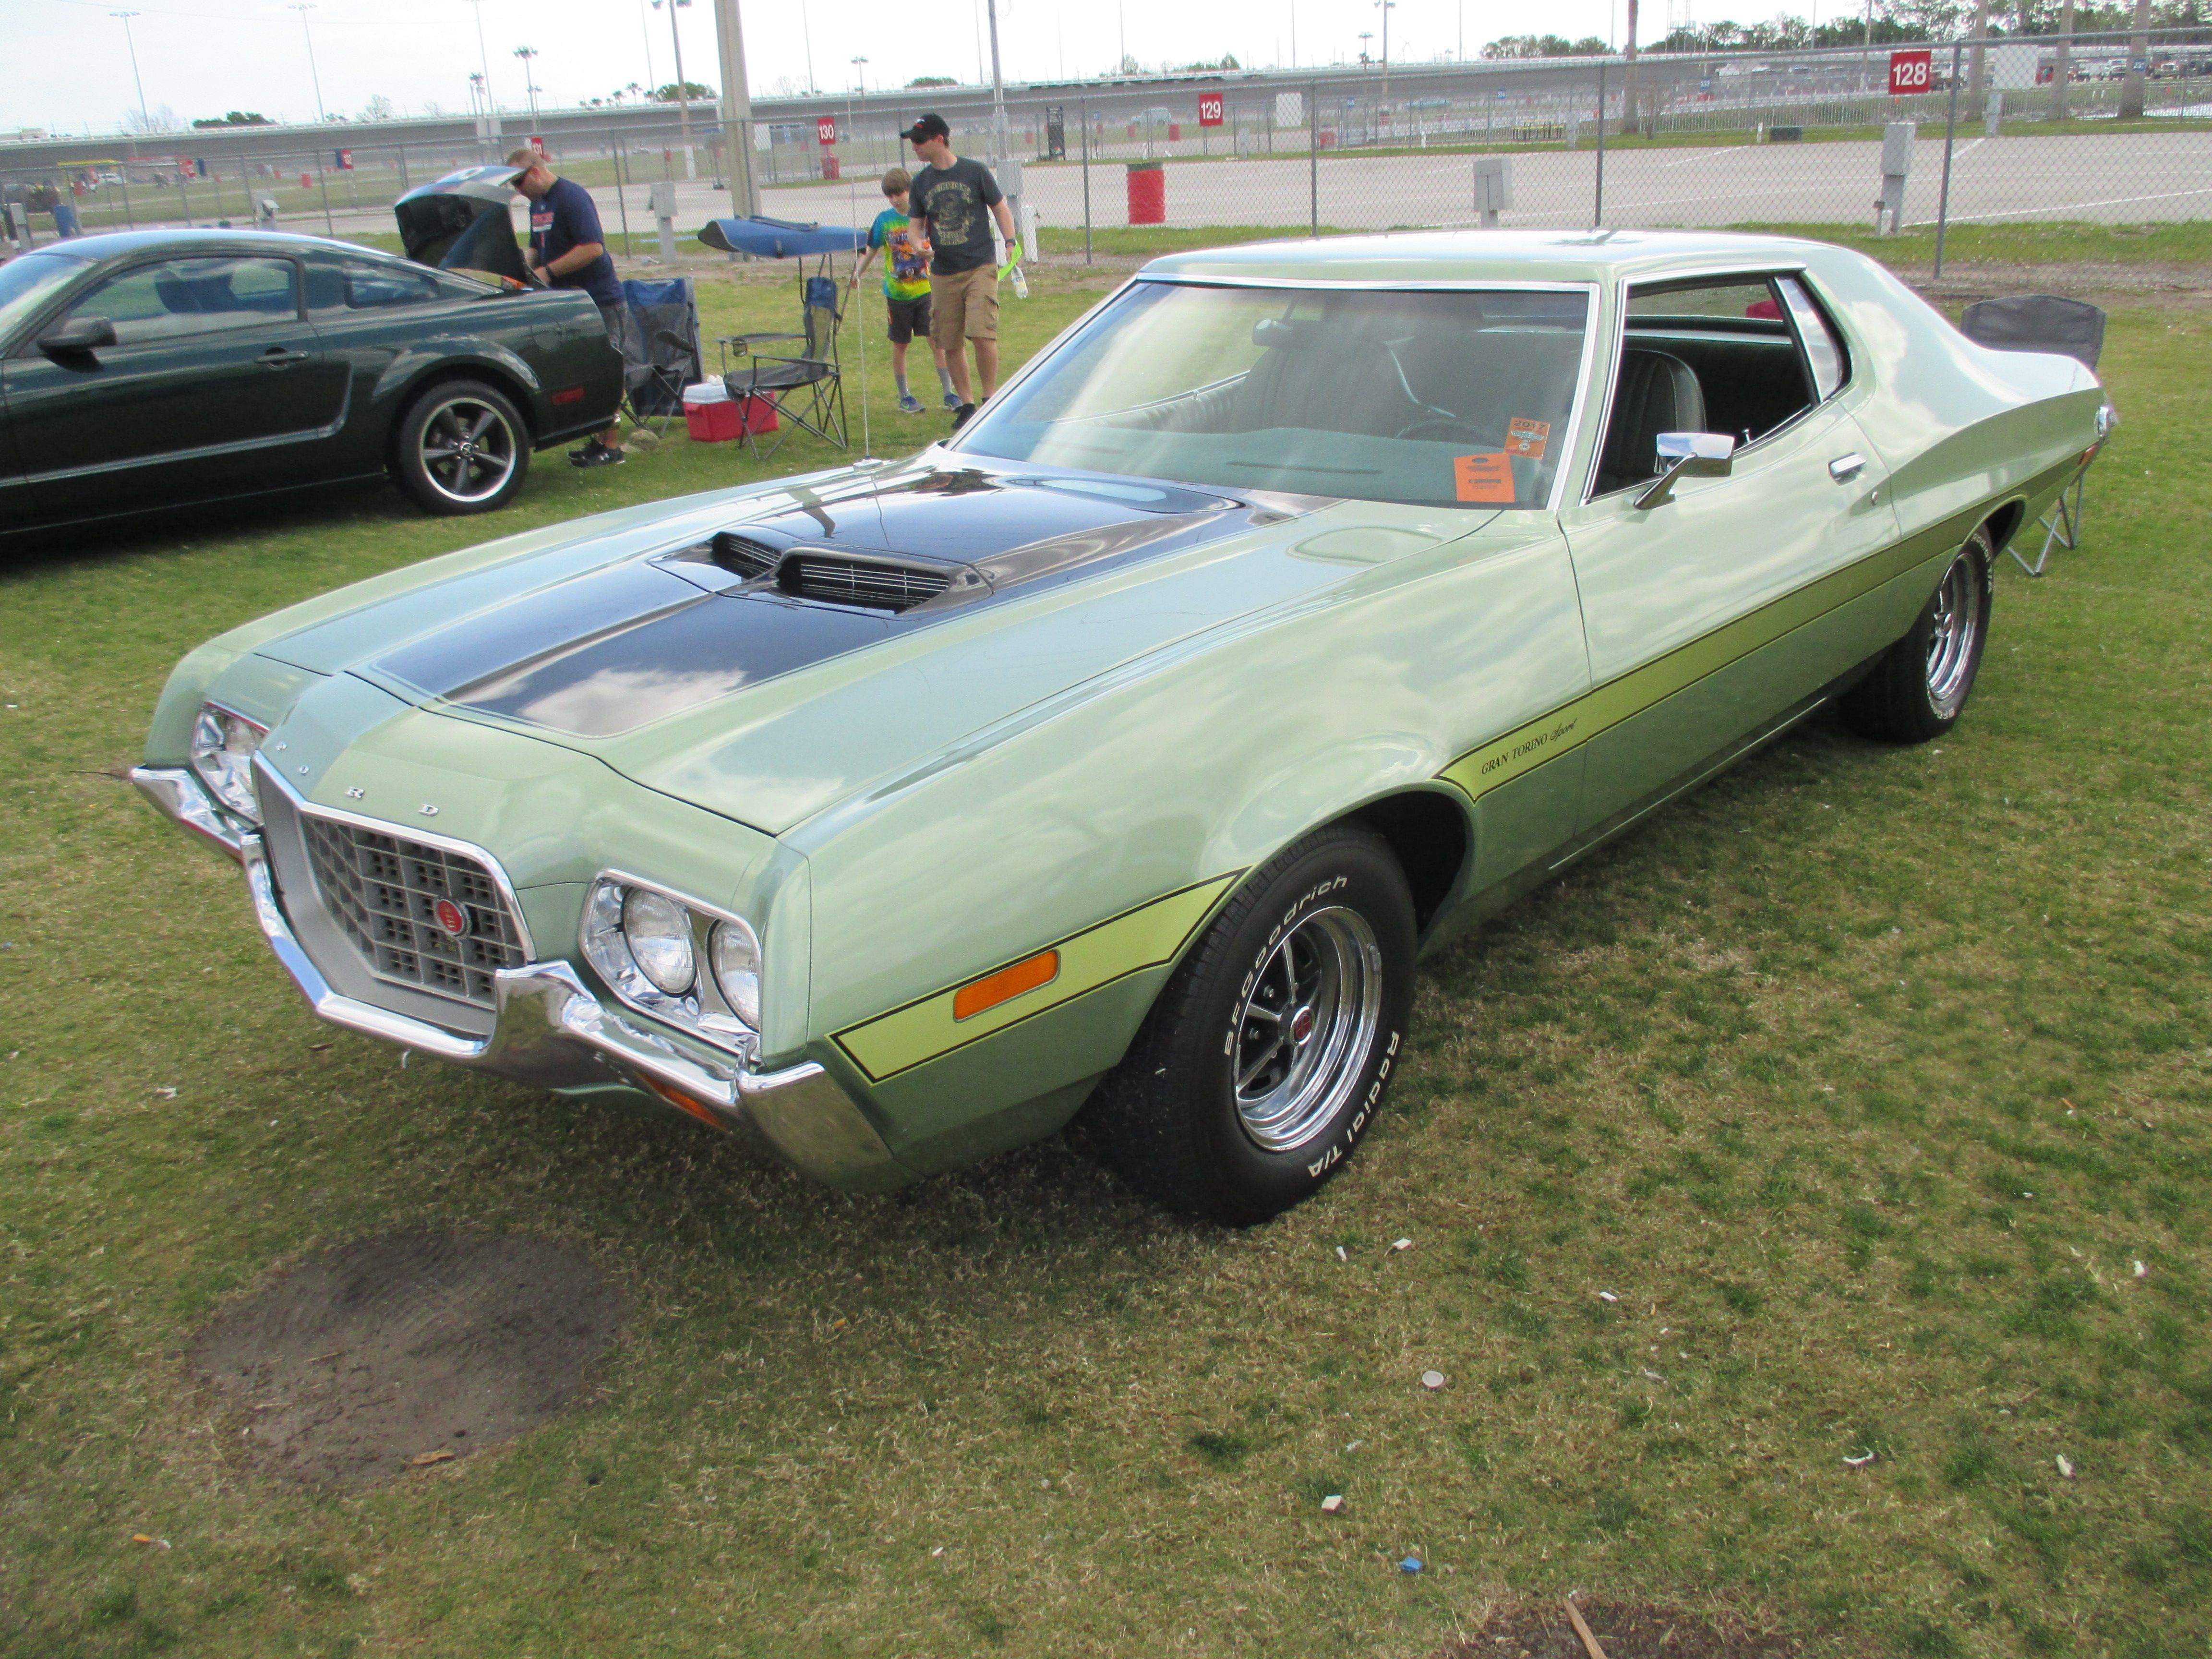 1972 mercury montego n code 429 restomod motorcycle custom - 1972 Gran Torino Ls The Ford Torino Page Forum Page 1 Torino Pinterest Gran Torino Ford Torino And Ford